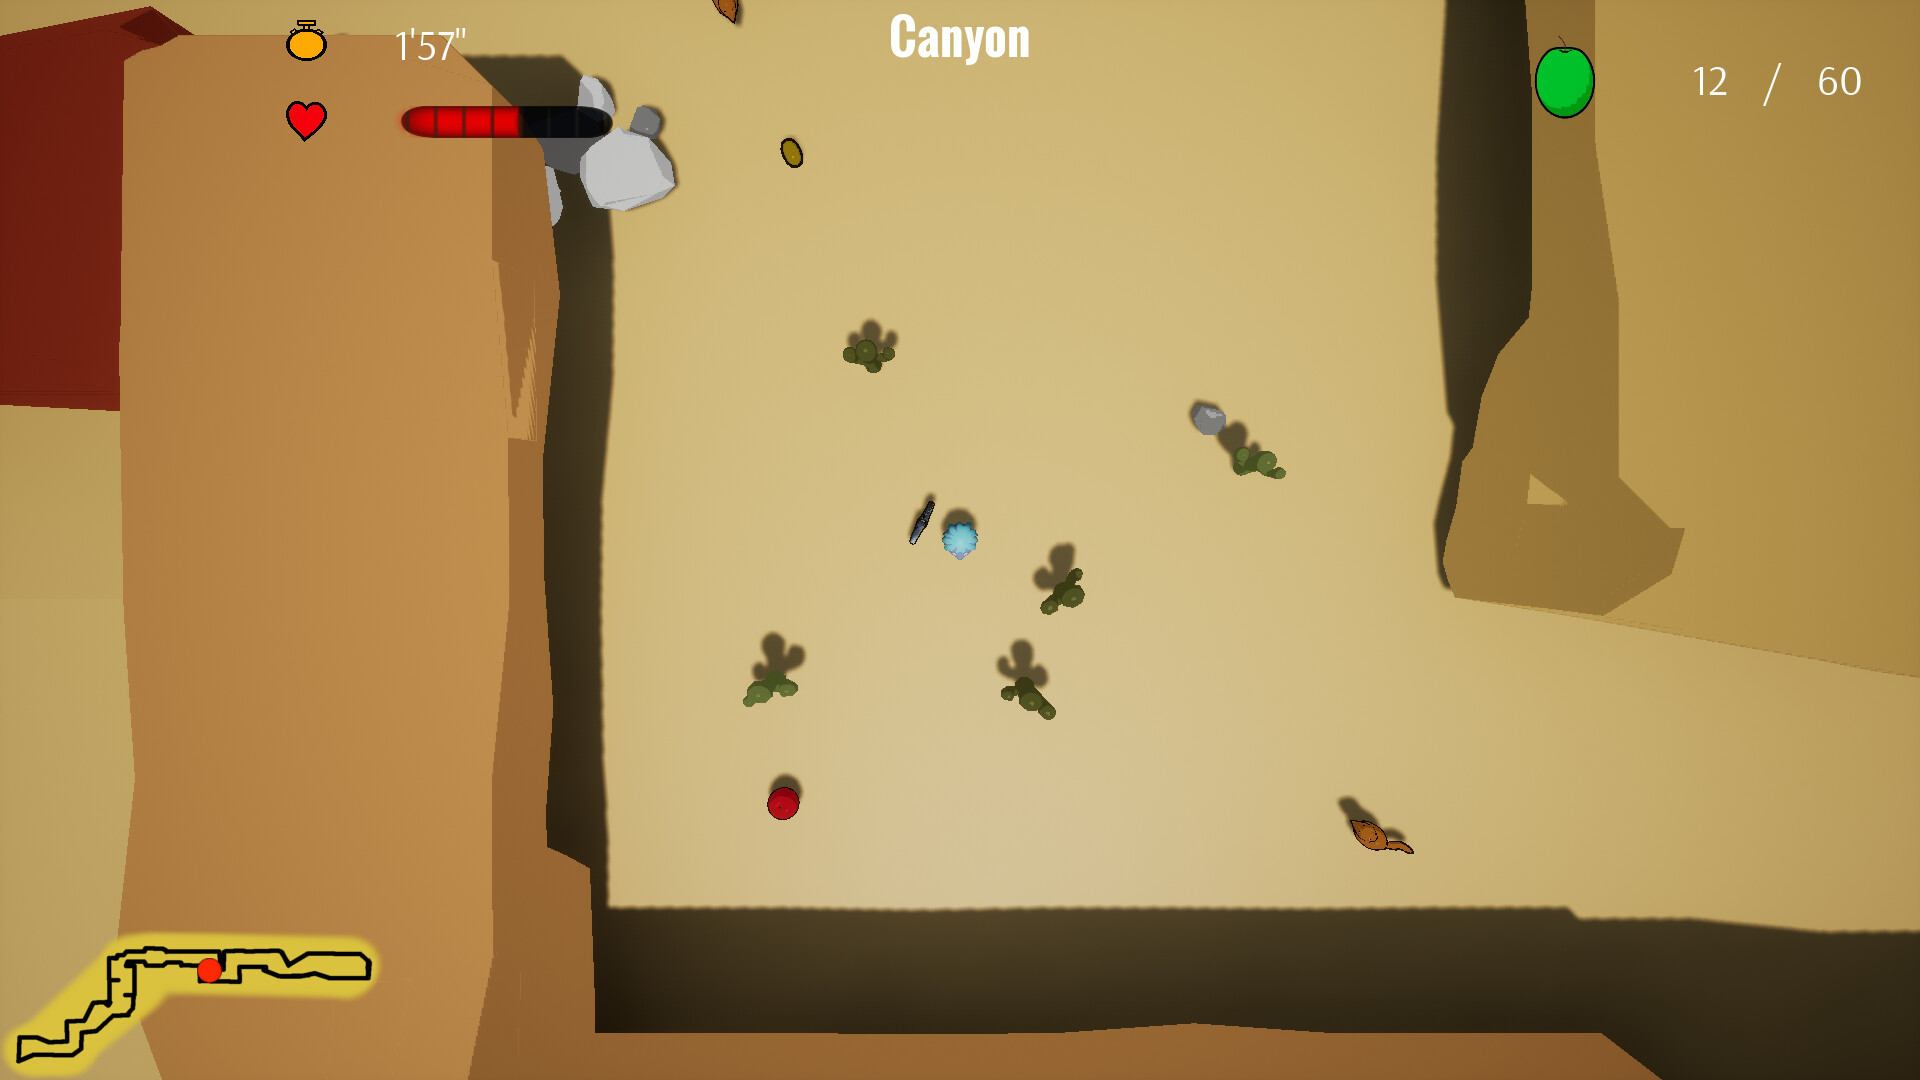 Gameplay in canyon